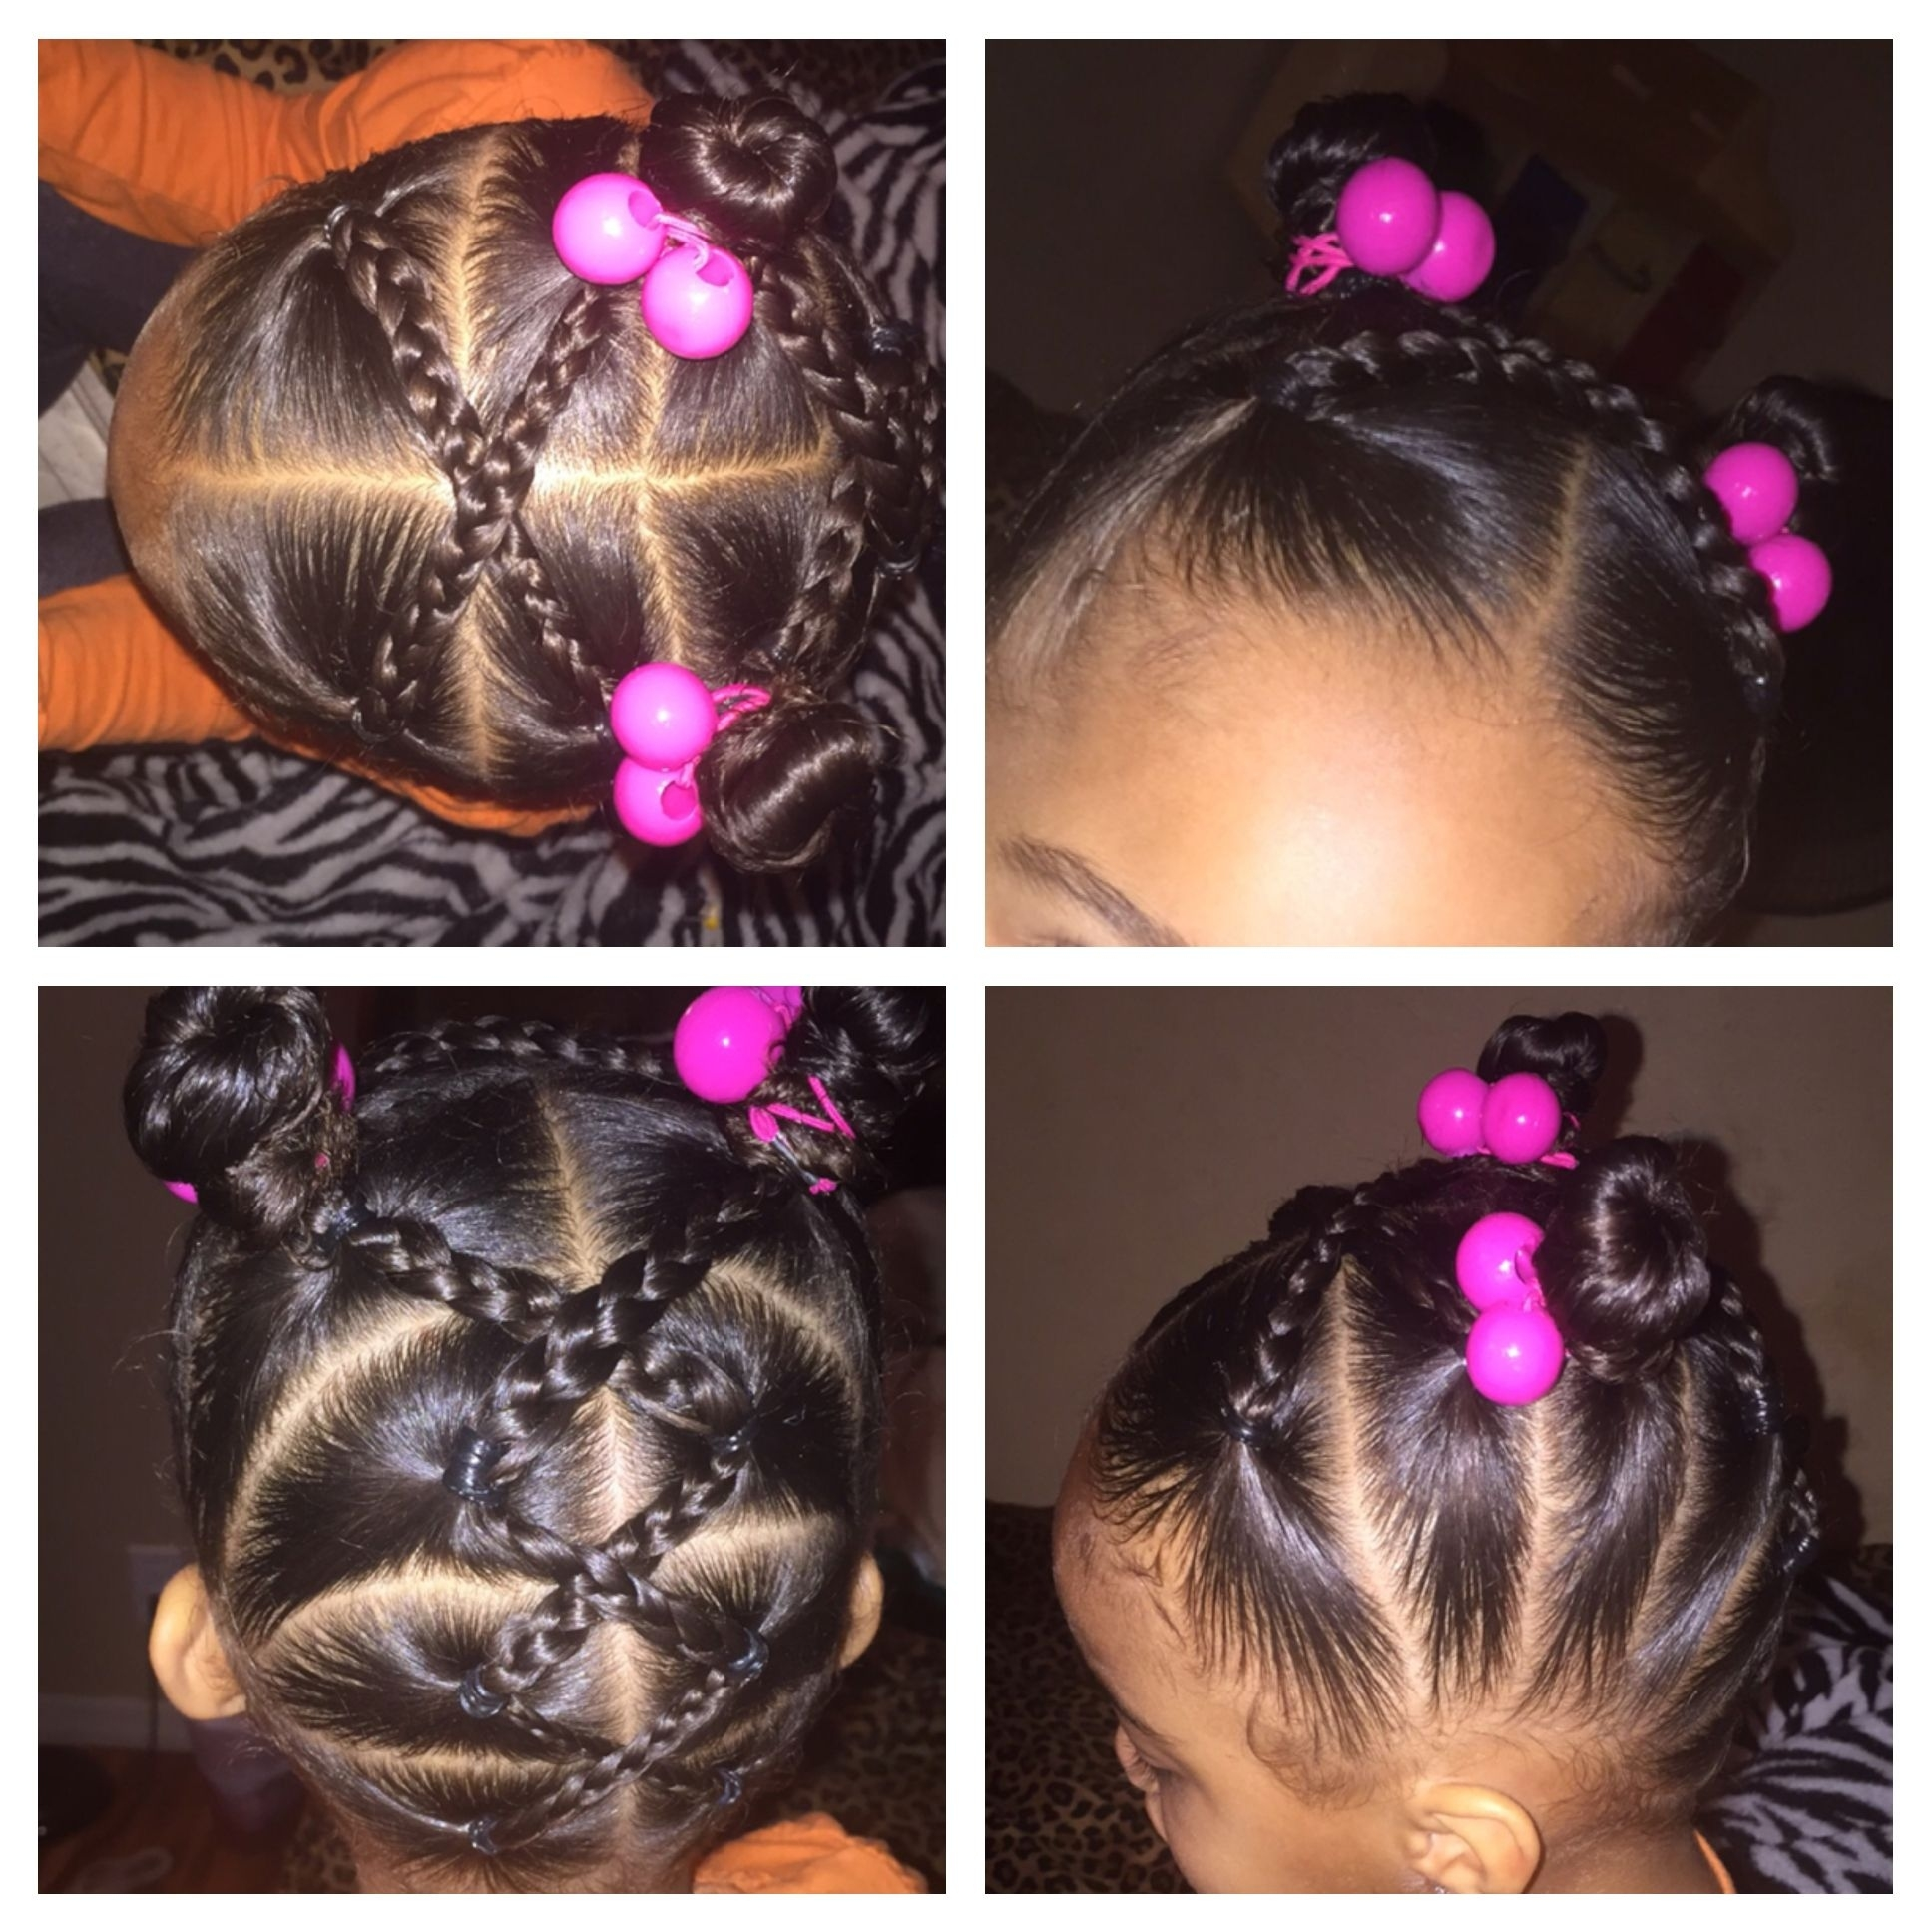 Mixed Girl Hairstyles | Hairstyles For Mixed Toddler Girl pertaining to Little Mixed Girl Hairstyles